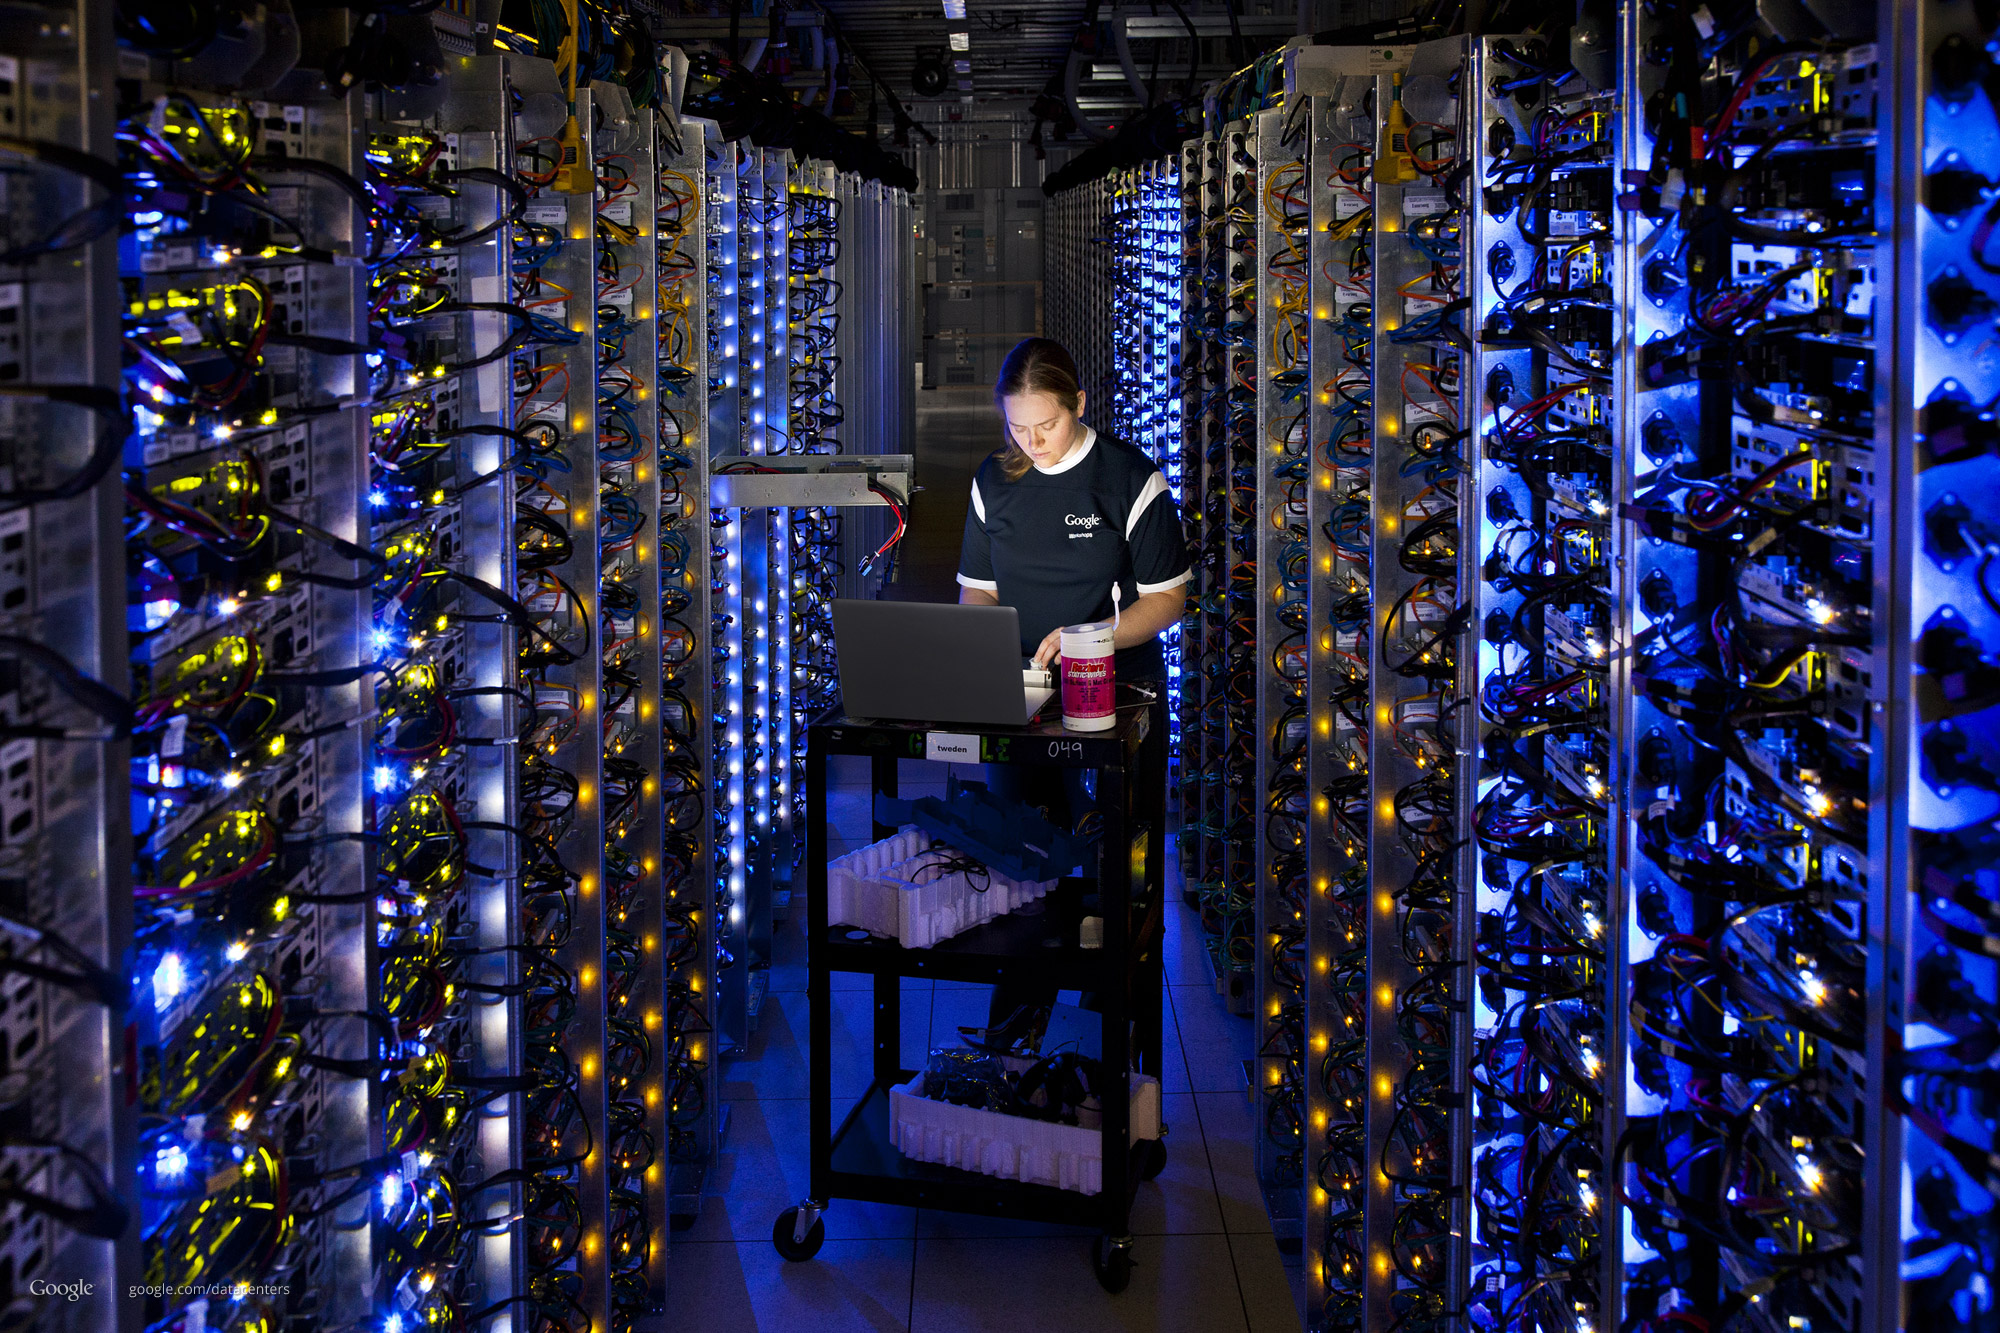 Photo: In the final, Connie cloned servers on the left to fill in the gap (http://goo.gl/Q0n6B)